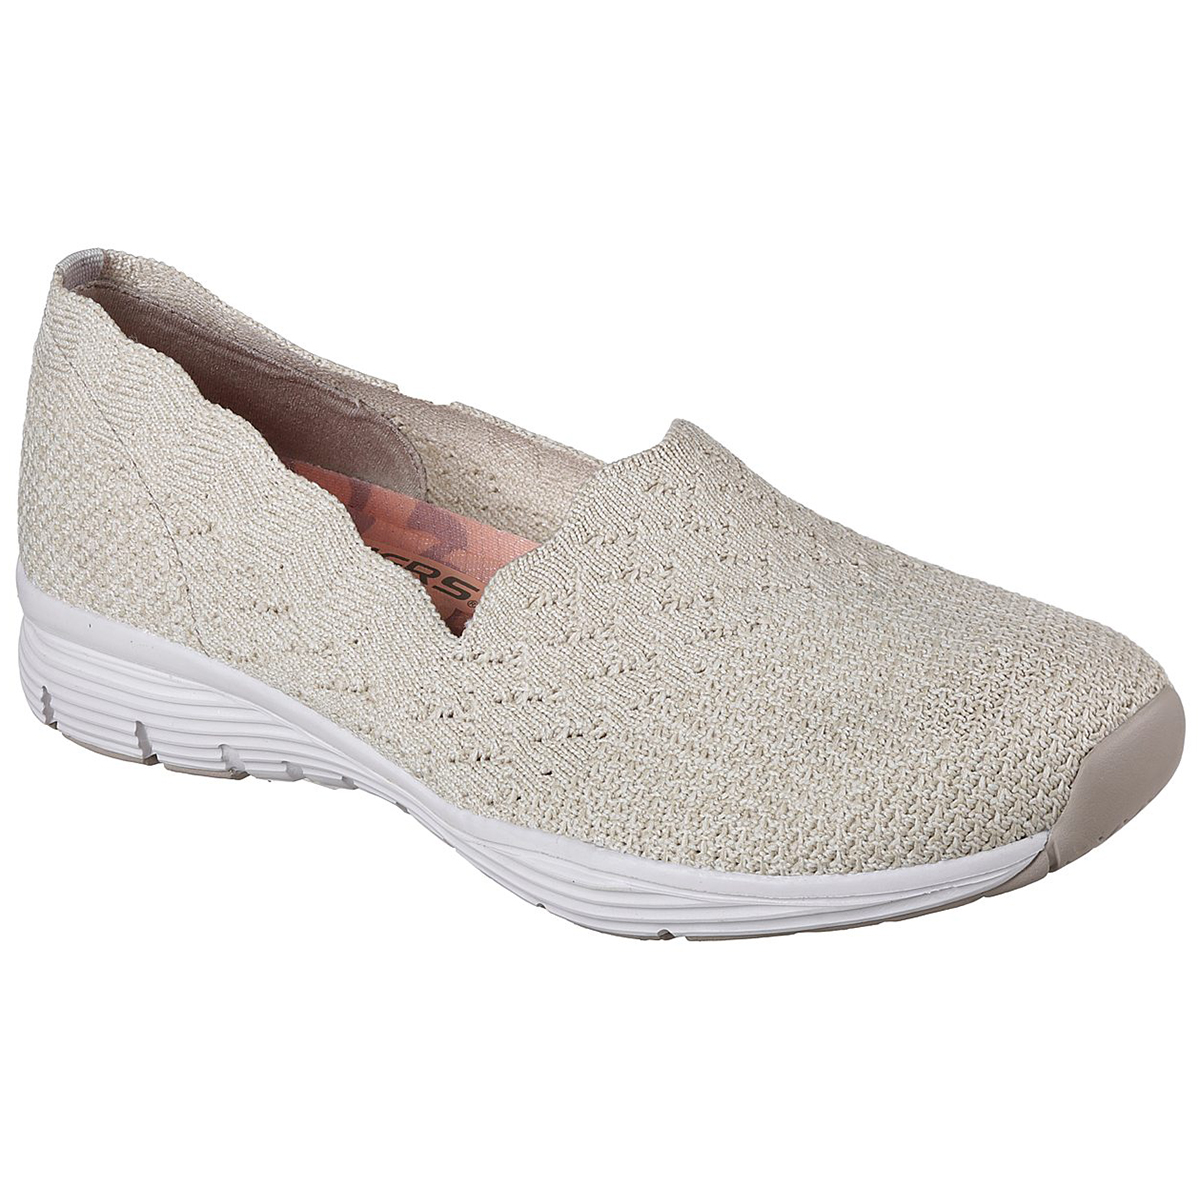 Skechers Women's Seager - Stat Casual Slip-On Shoes - White, 6